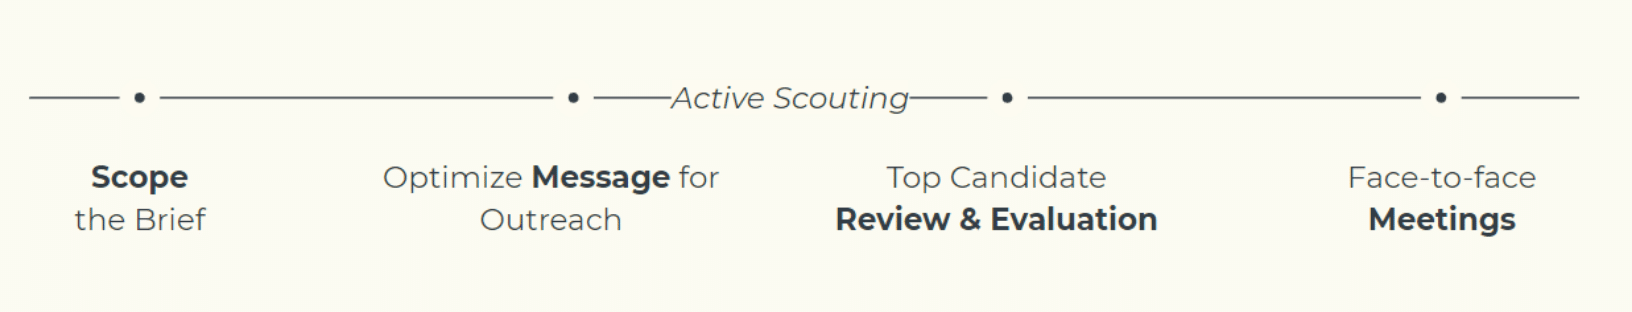 Scouting timeline